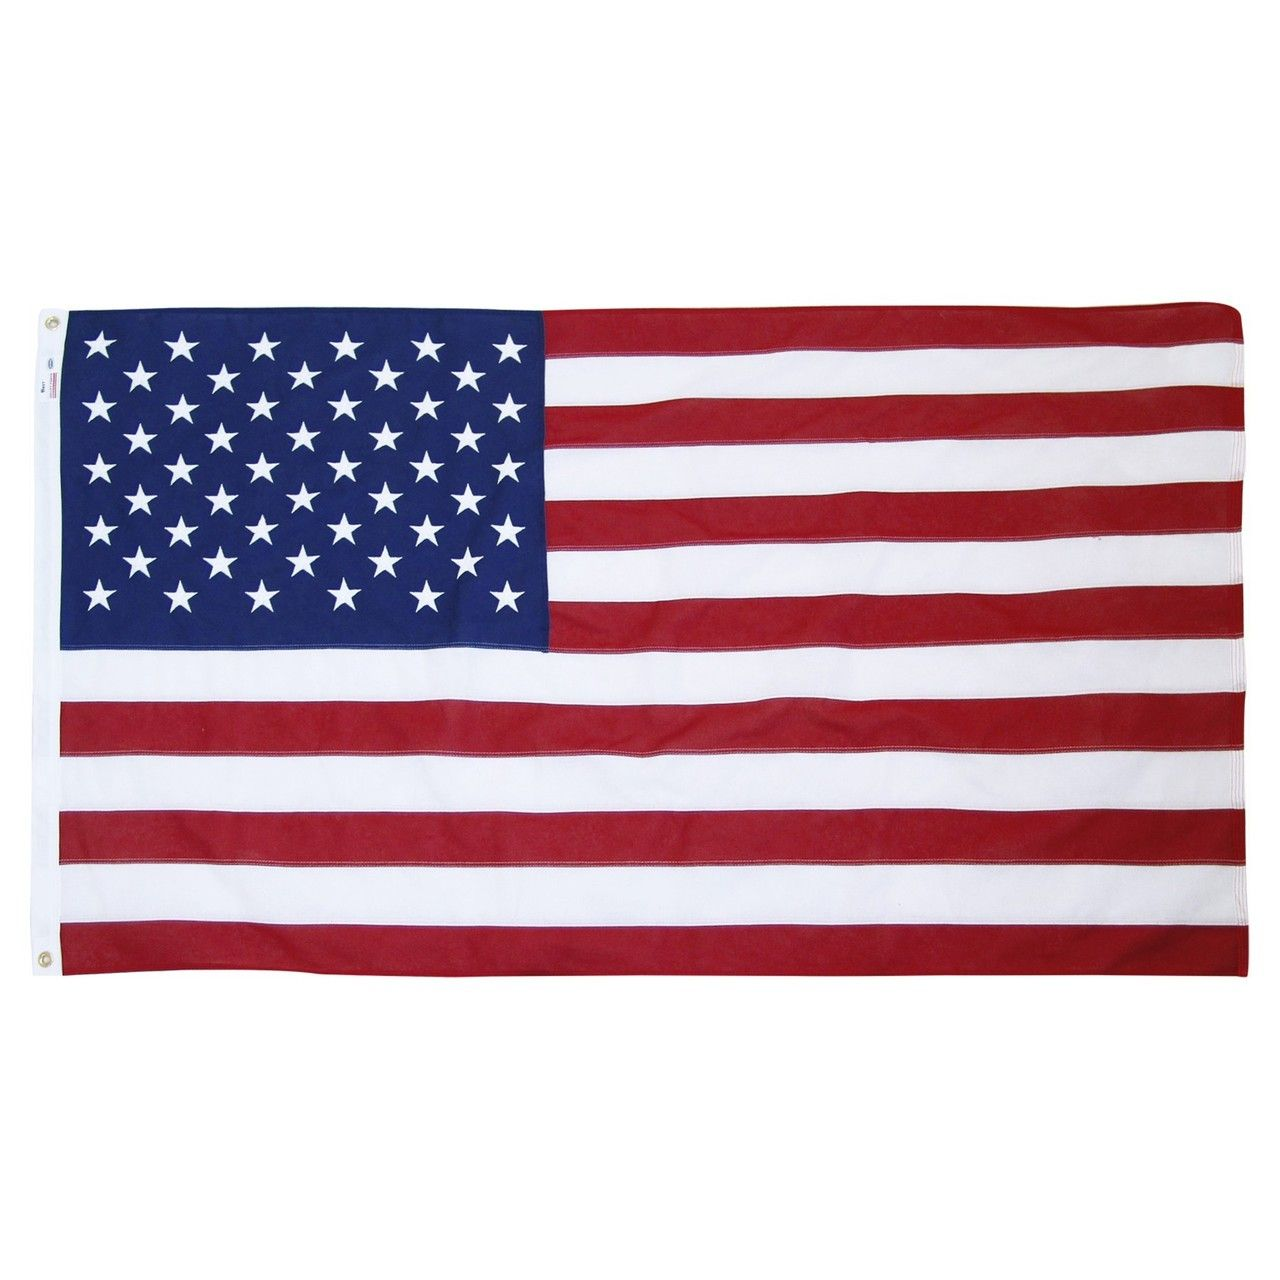 Buy U.S. American Cotton Flag by Valley Flag, Usa